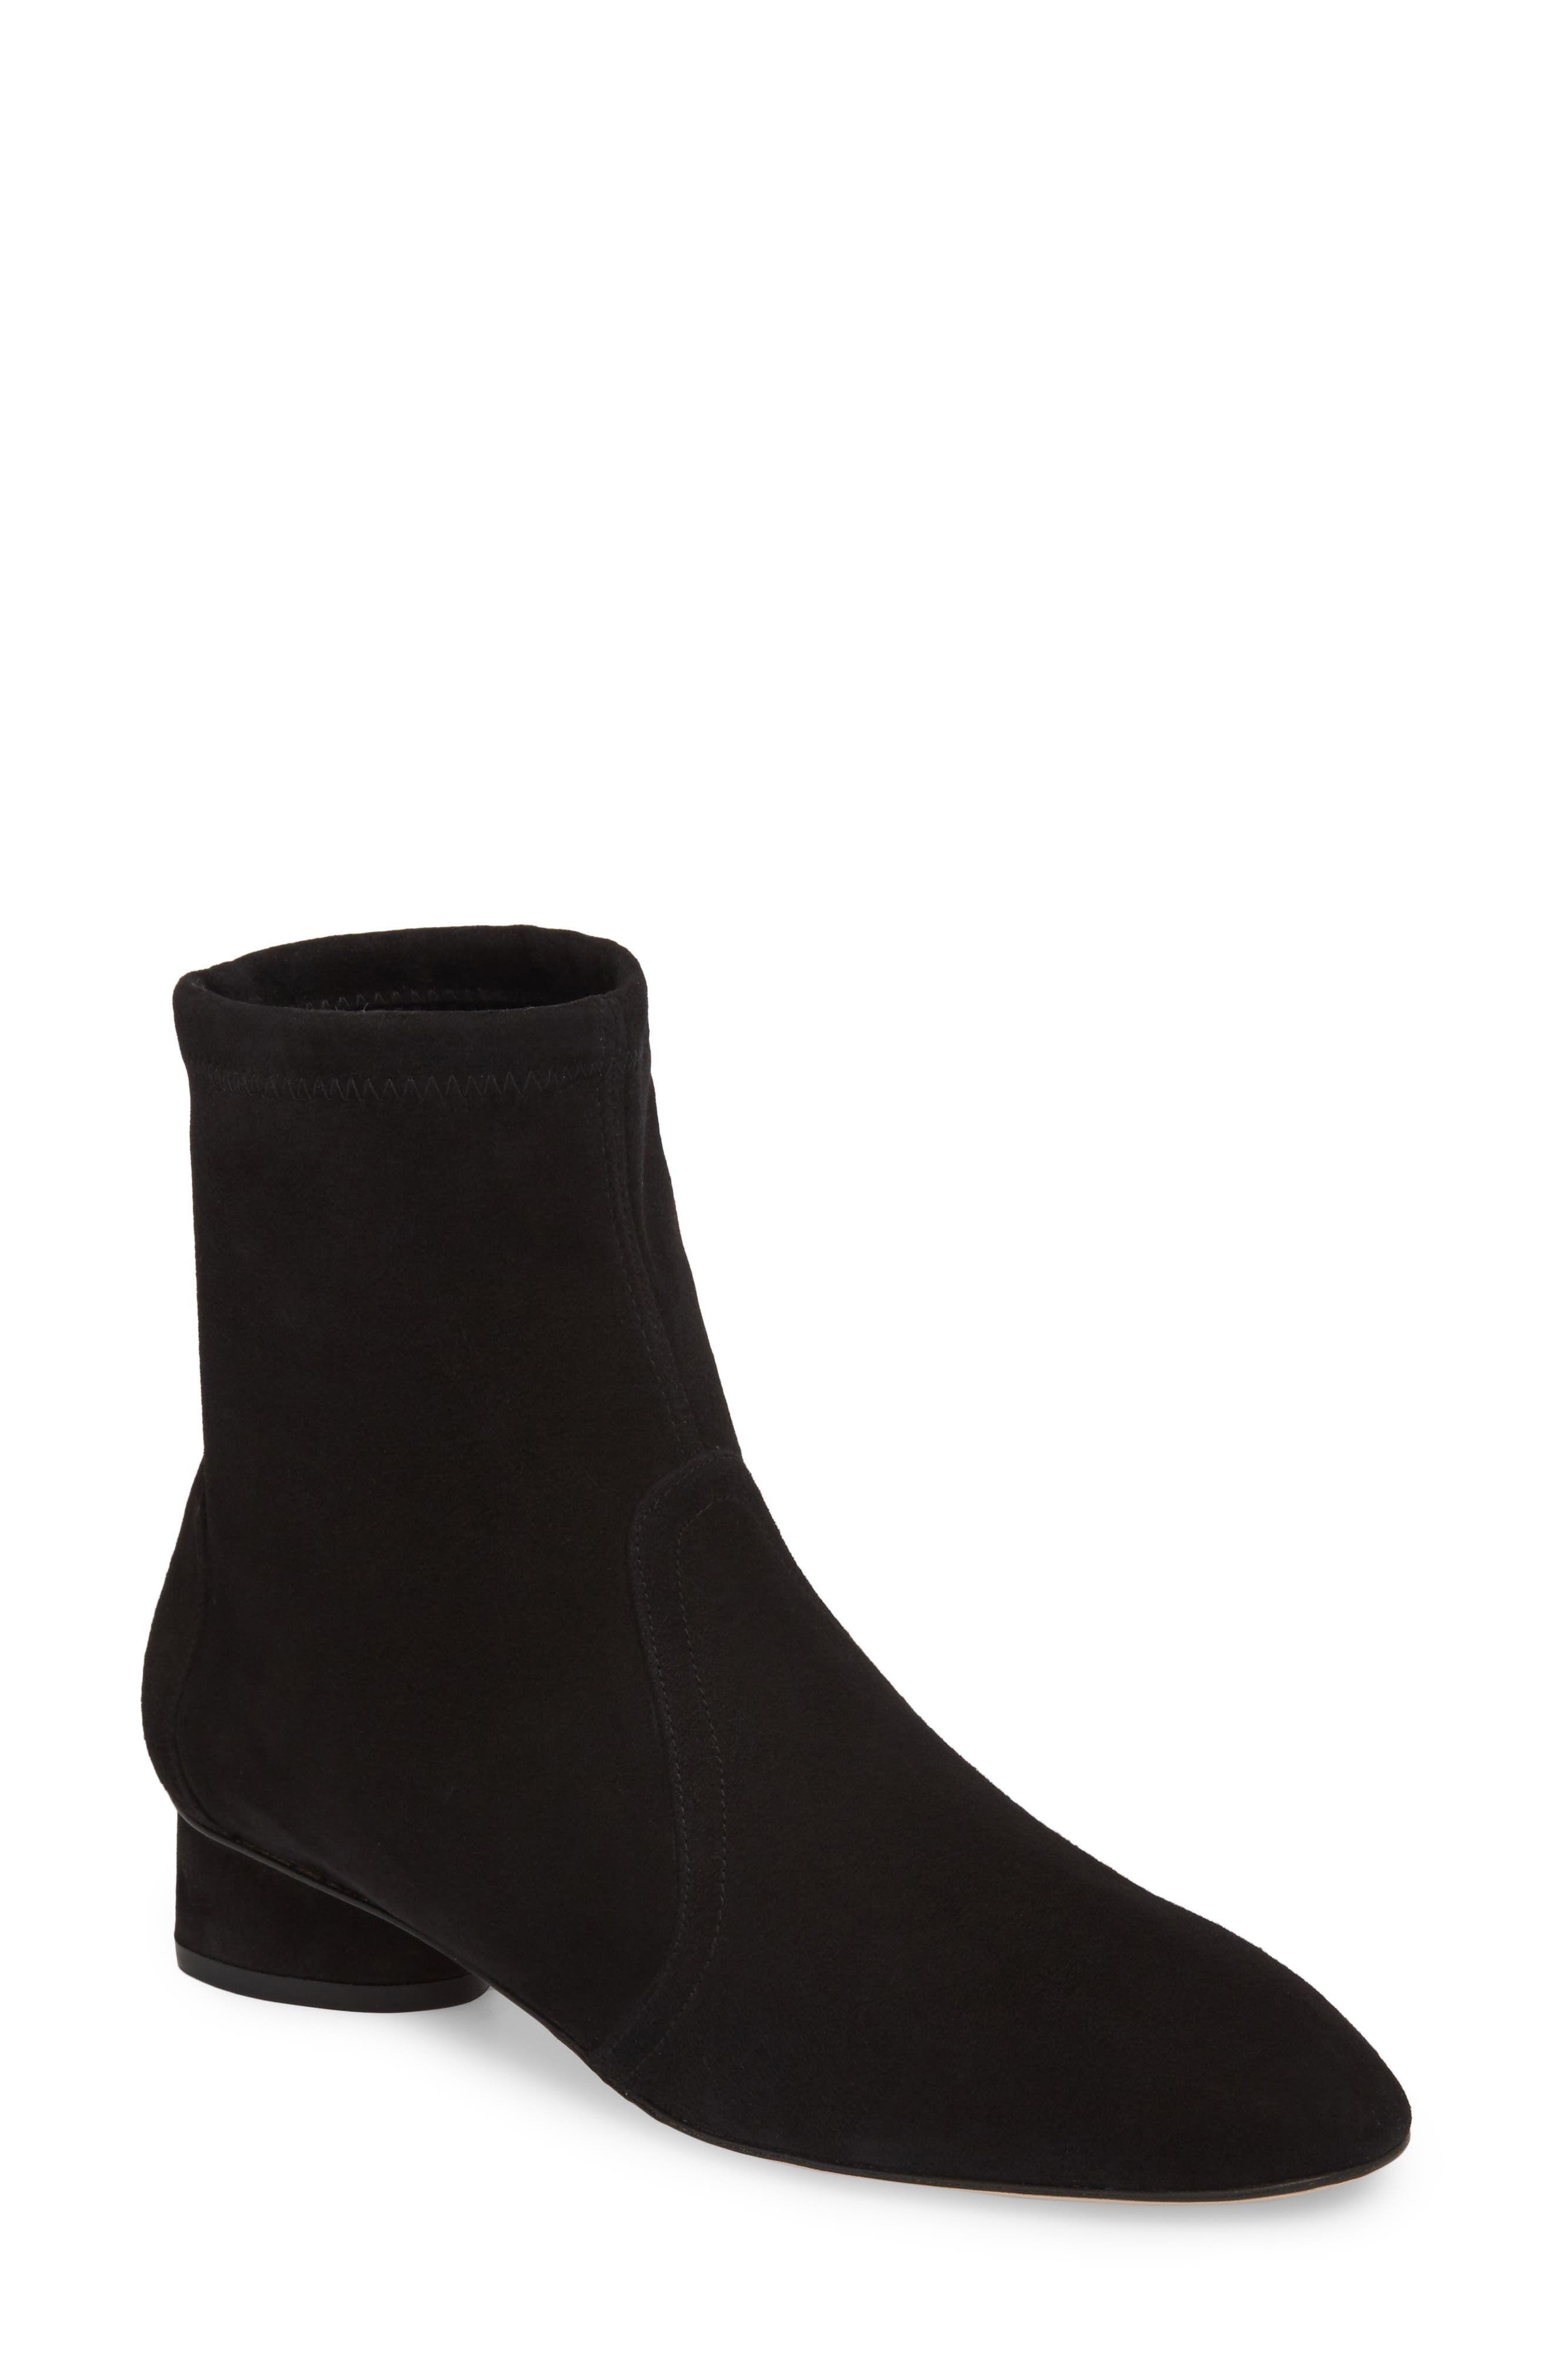 Quebec Bootie,                             Main thumbnail 1, color,                             Black Luxe Suede